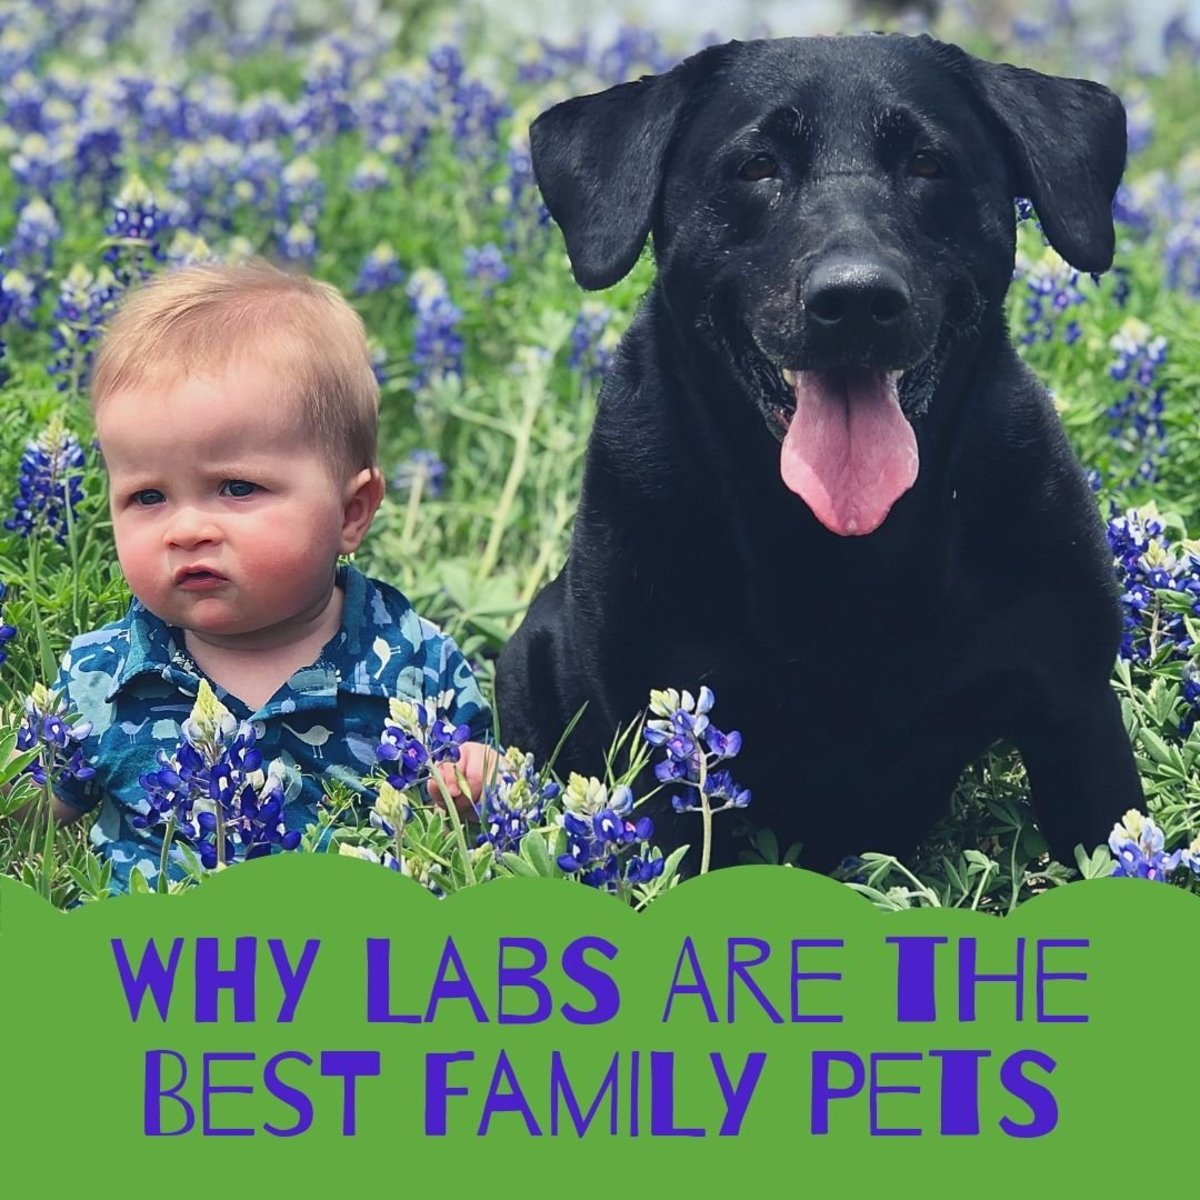 10 Reasons Labrador Retrievers Make Great Family Pets